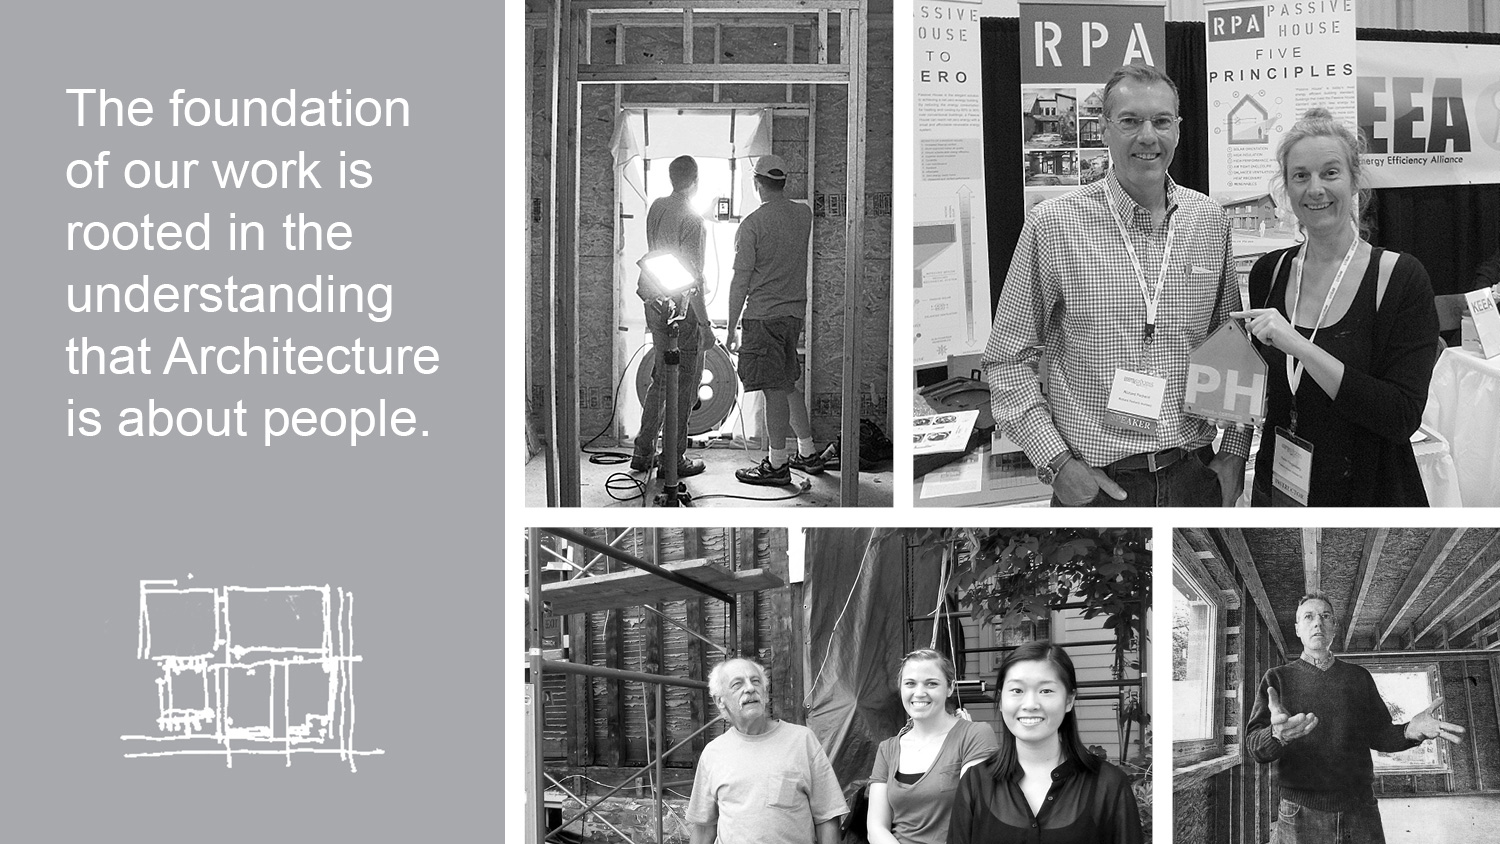 The foundation of our work is rooted in the understanding that Architecture is about people.